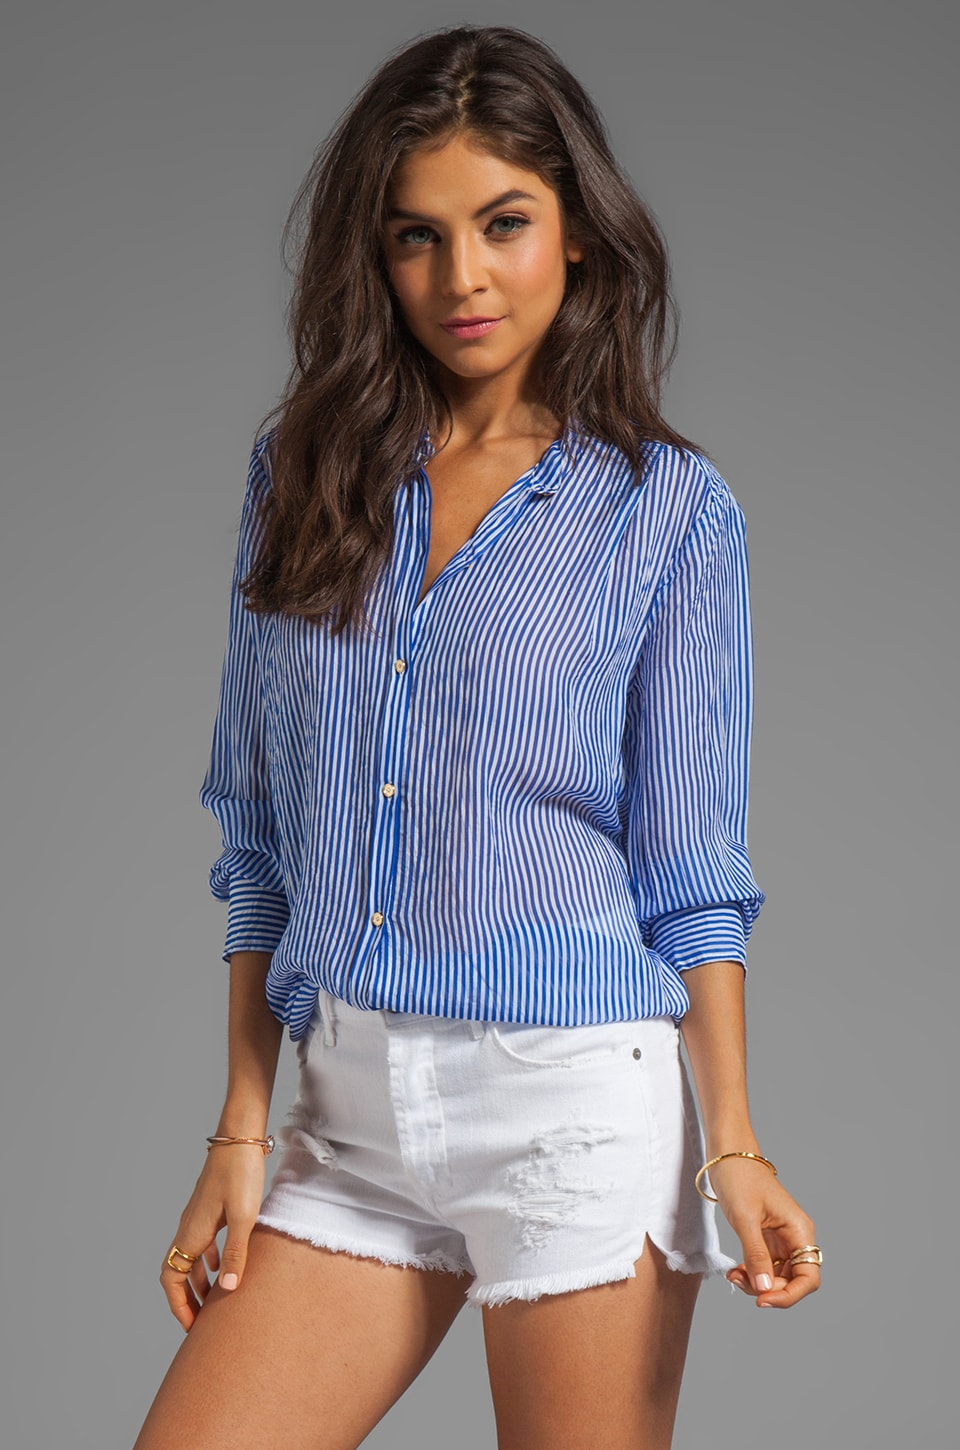 Juicy Couture Moonlight Stripe Blouse in Bright Azure/White